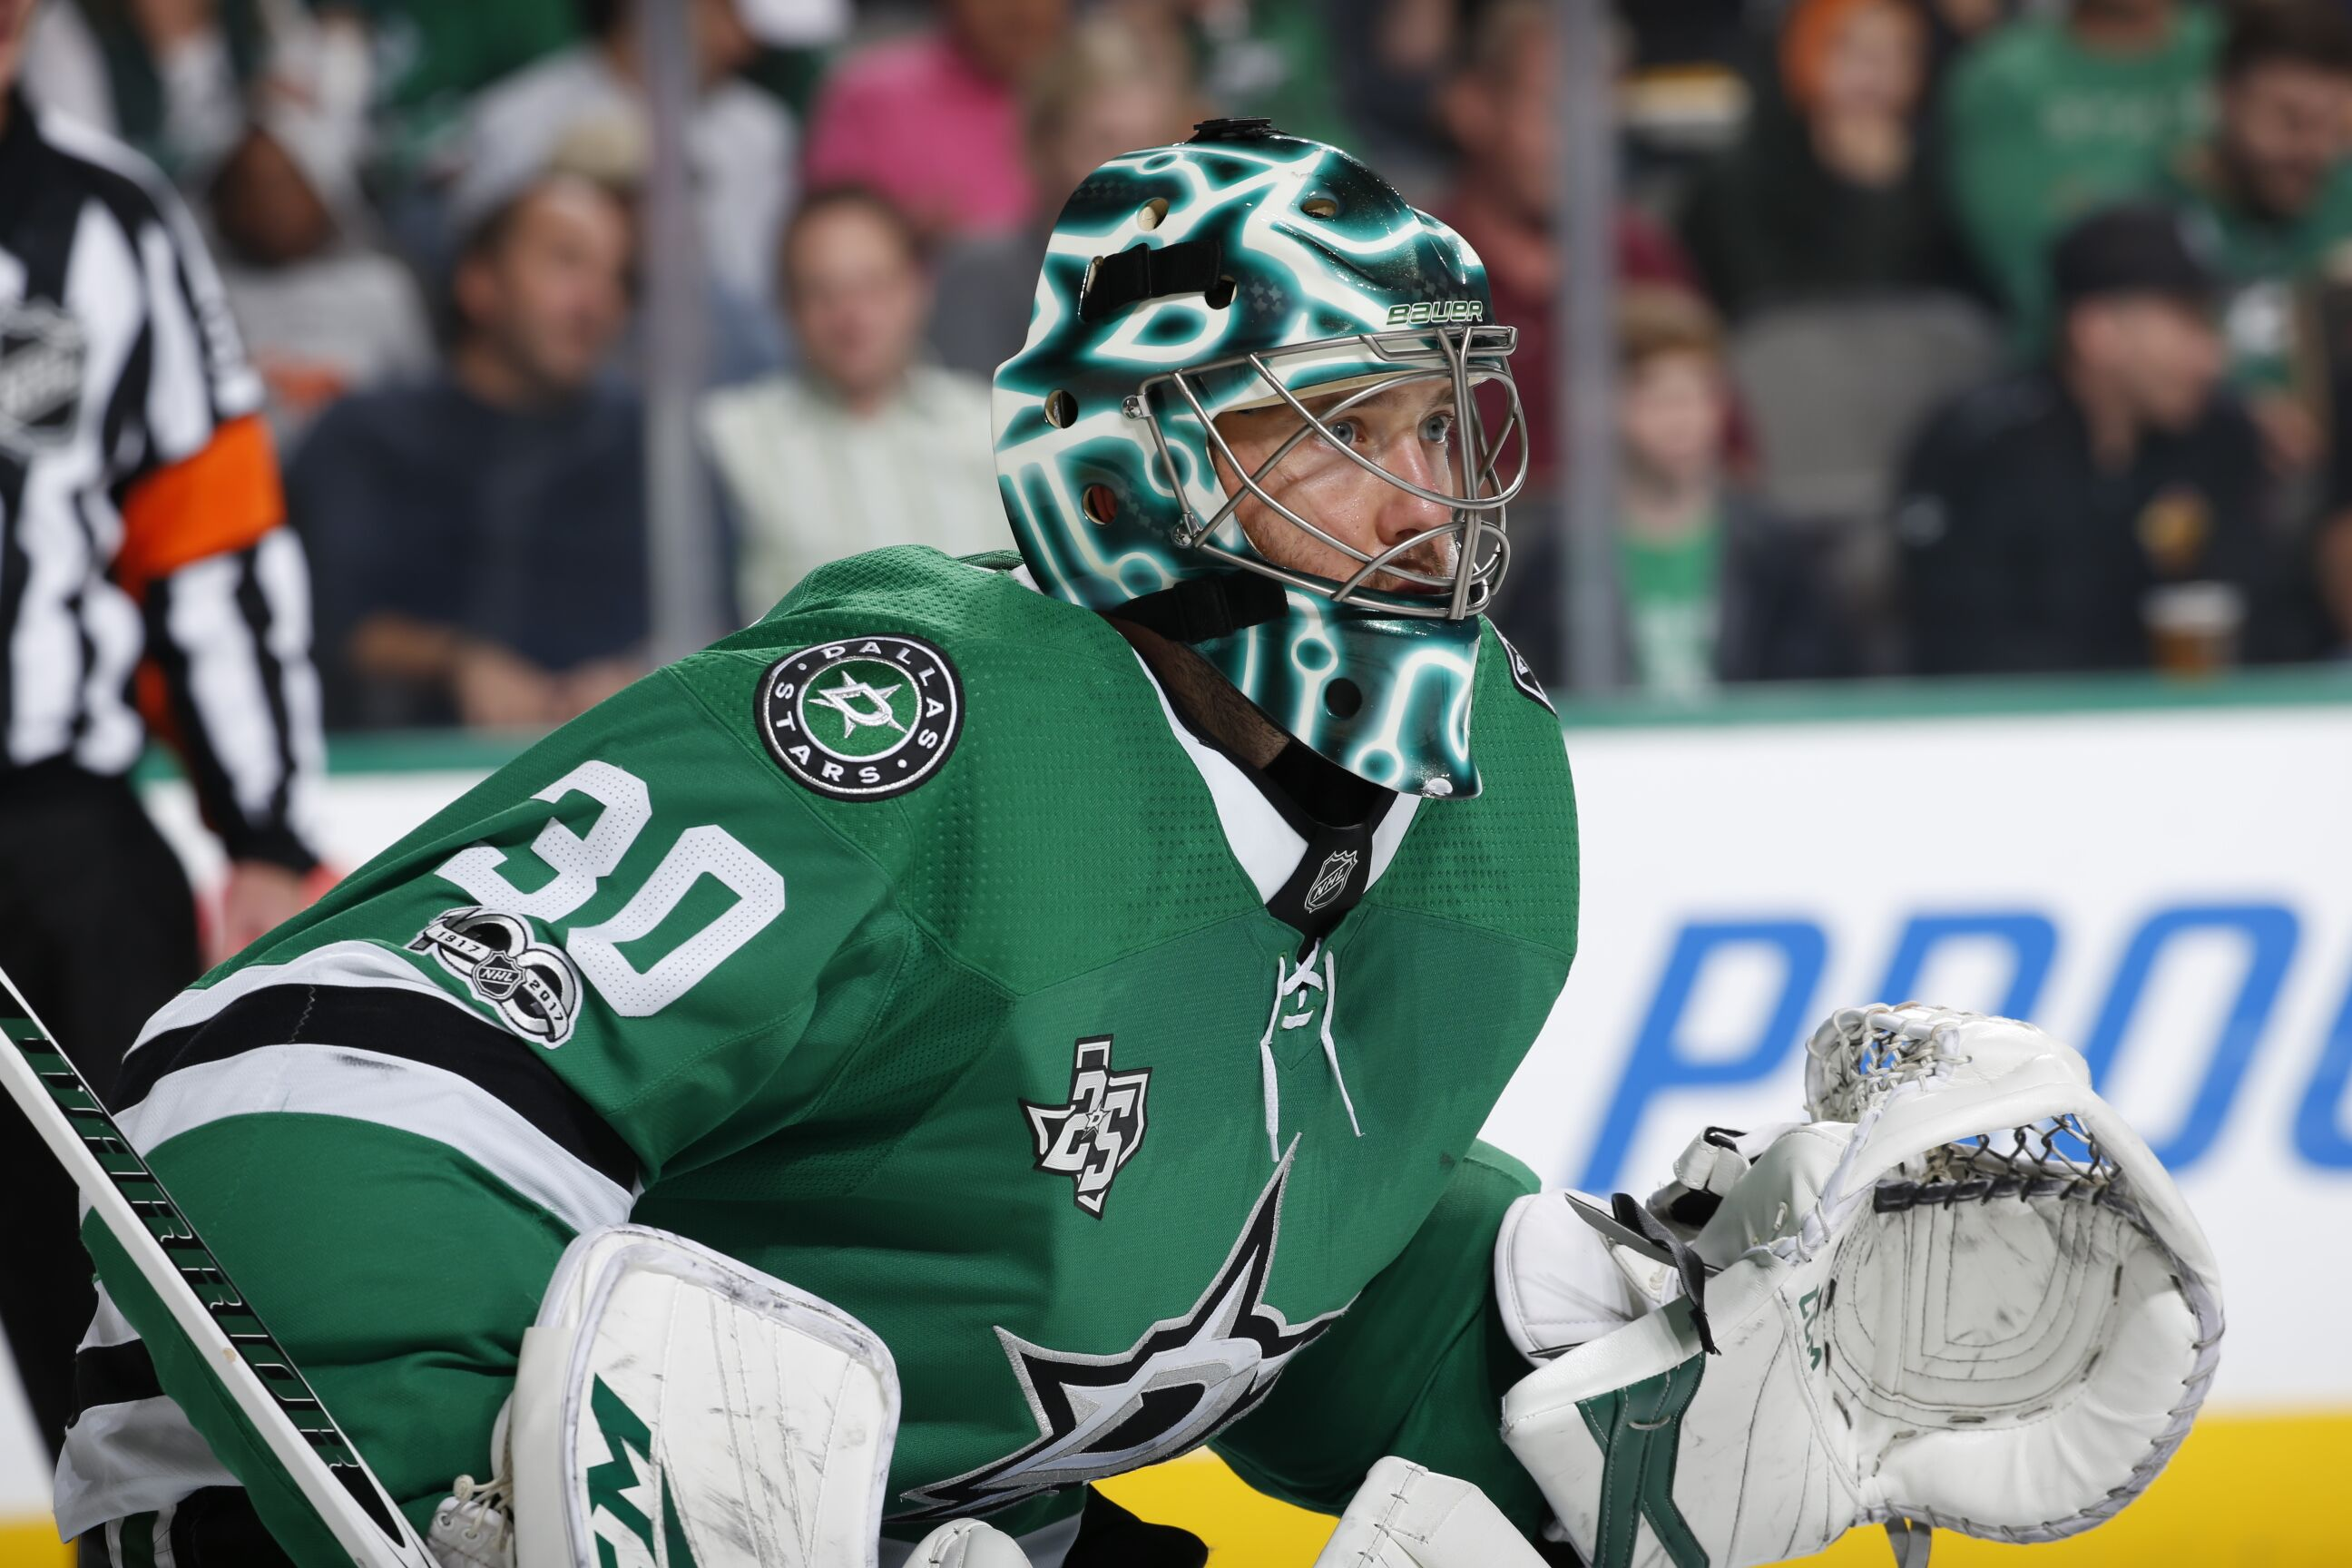 Image result for Ben bishop dallas stars